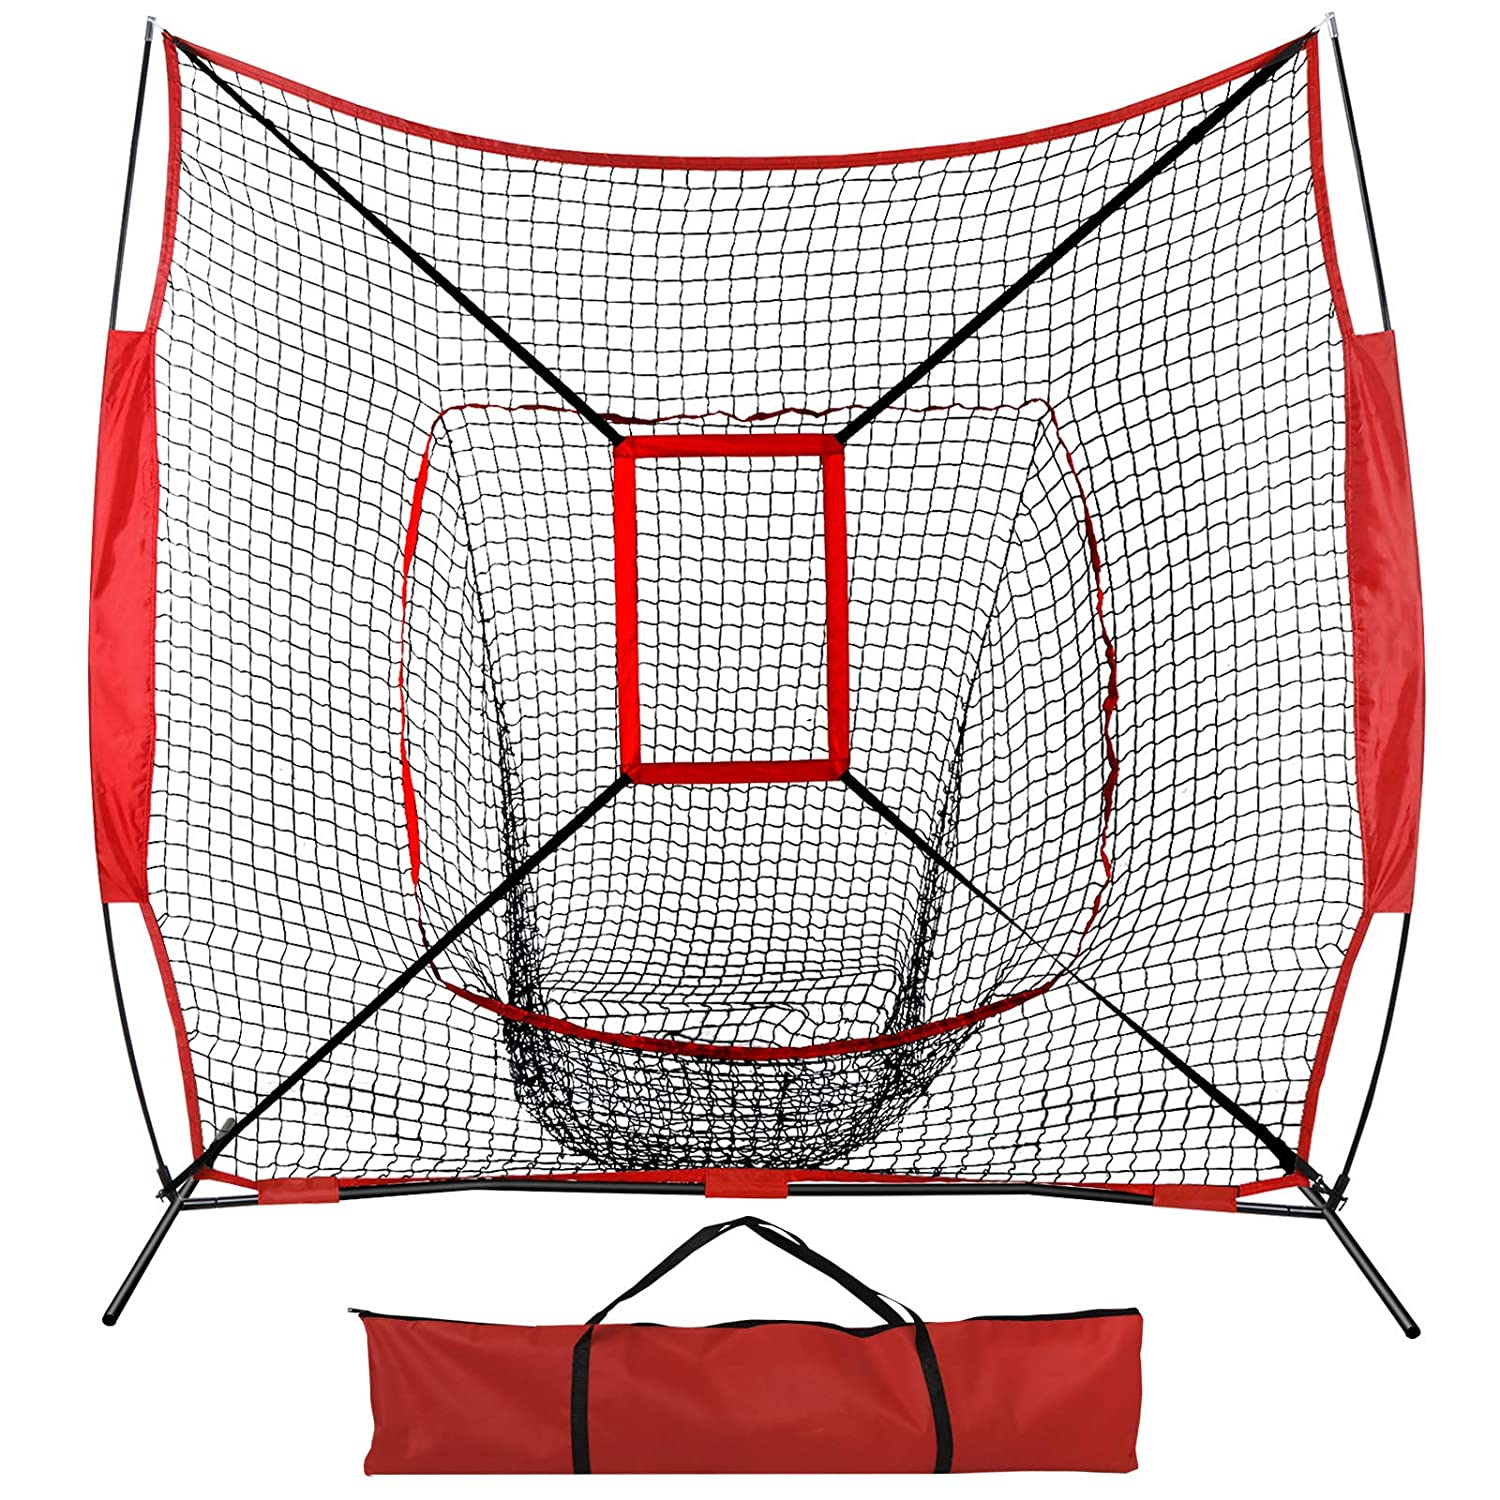 homgarden 7 x 7野球/ソフトボールネット、Pitching、Batting PracticeヒットとCatchingトレーニングAids w/Carry Bag 7'x7'w/bag & strike zone  B07CSP8SBG